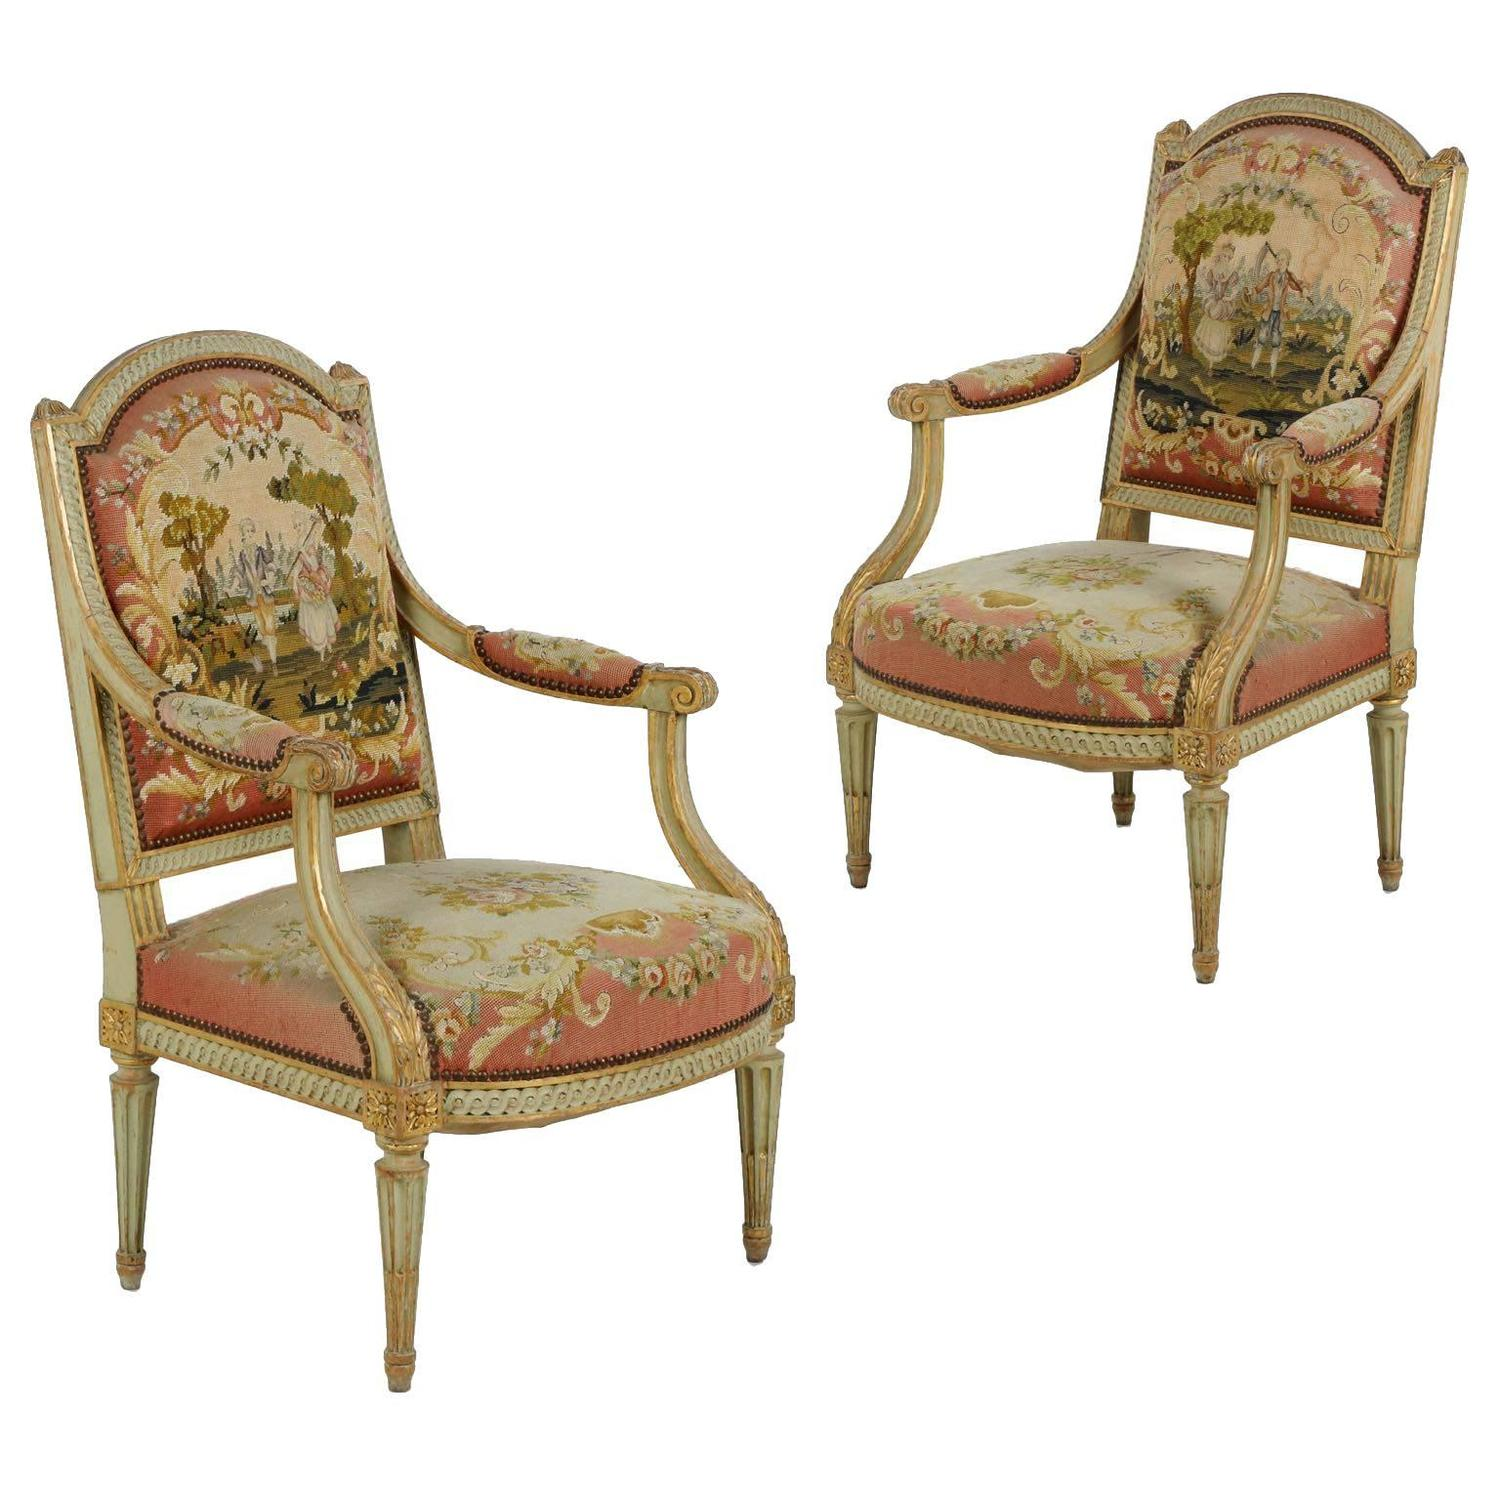 Antique Tapestry Sofa: Pair Of French Louis XVI Green Painted Antique Fauteuils